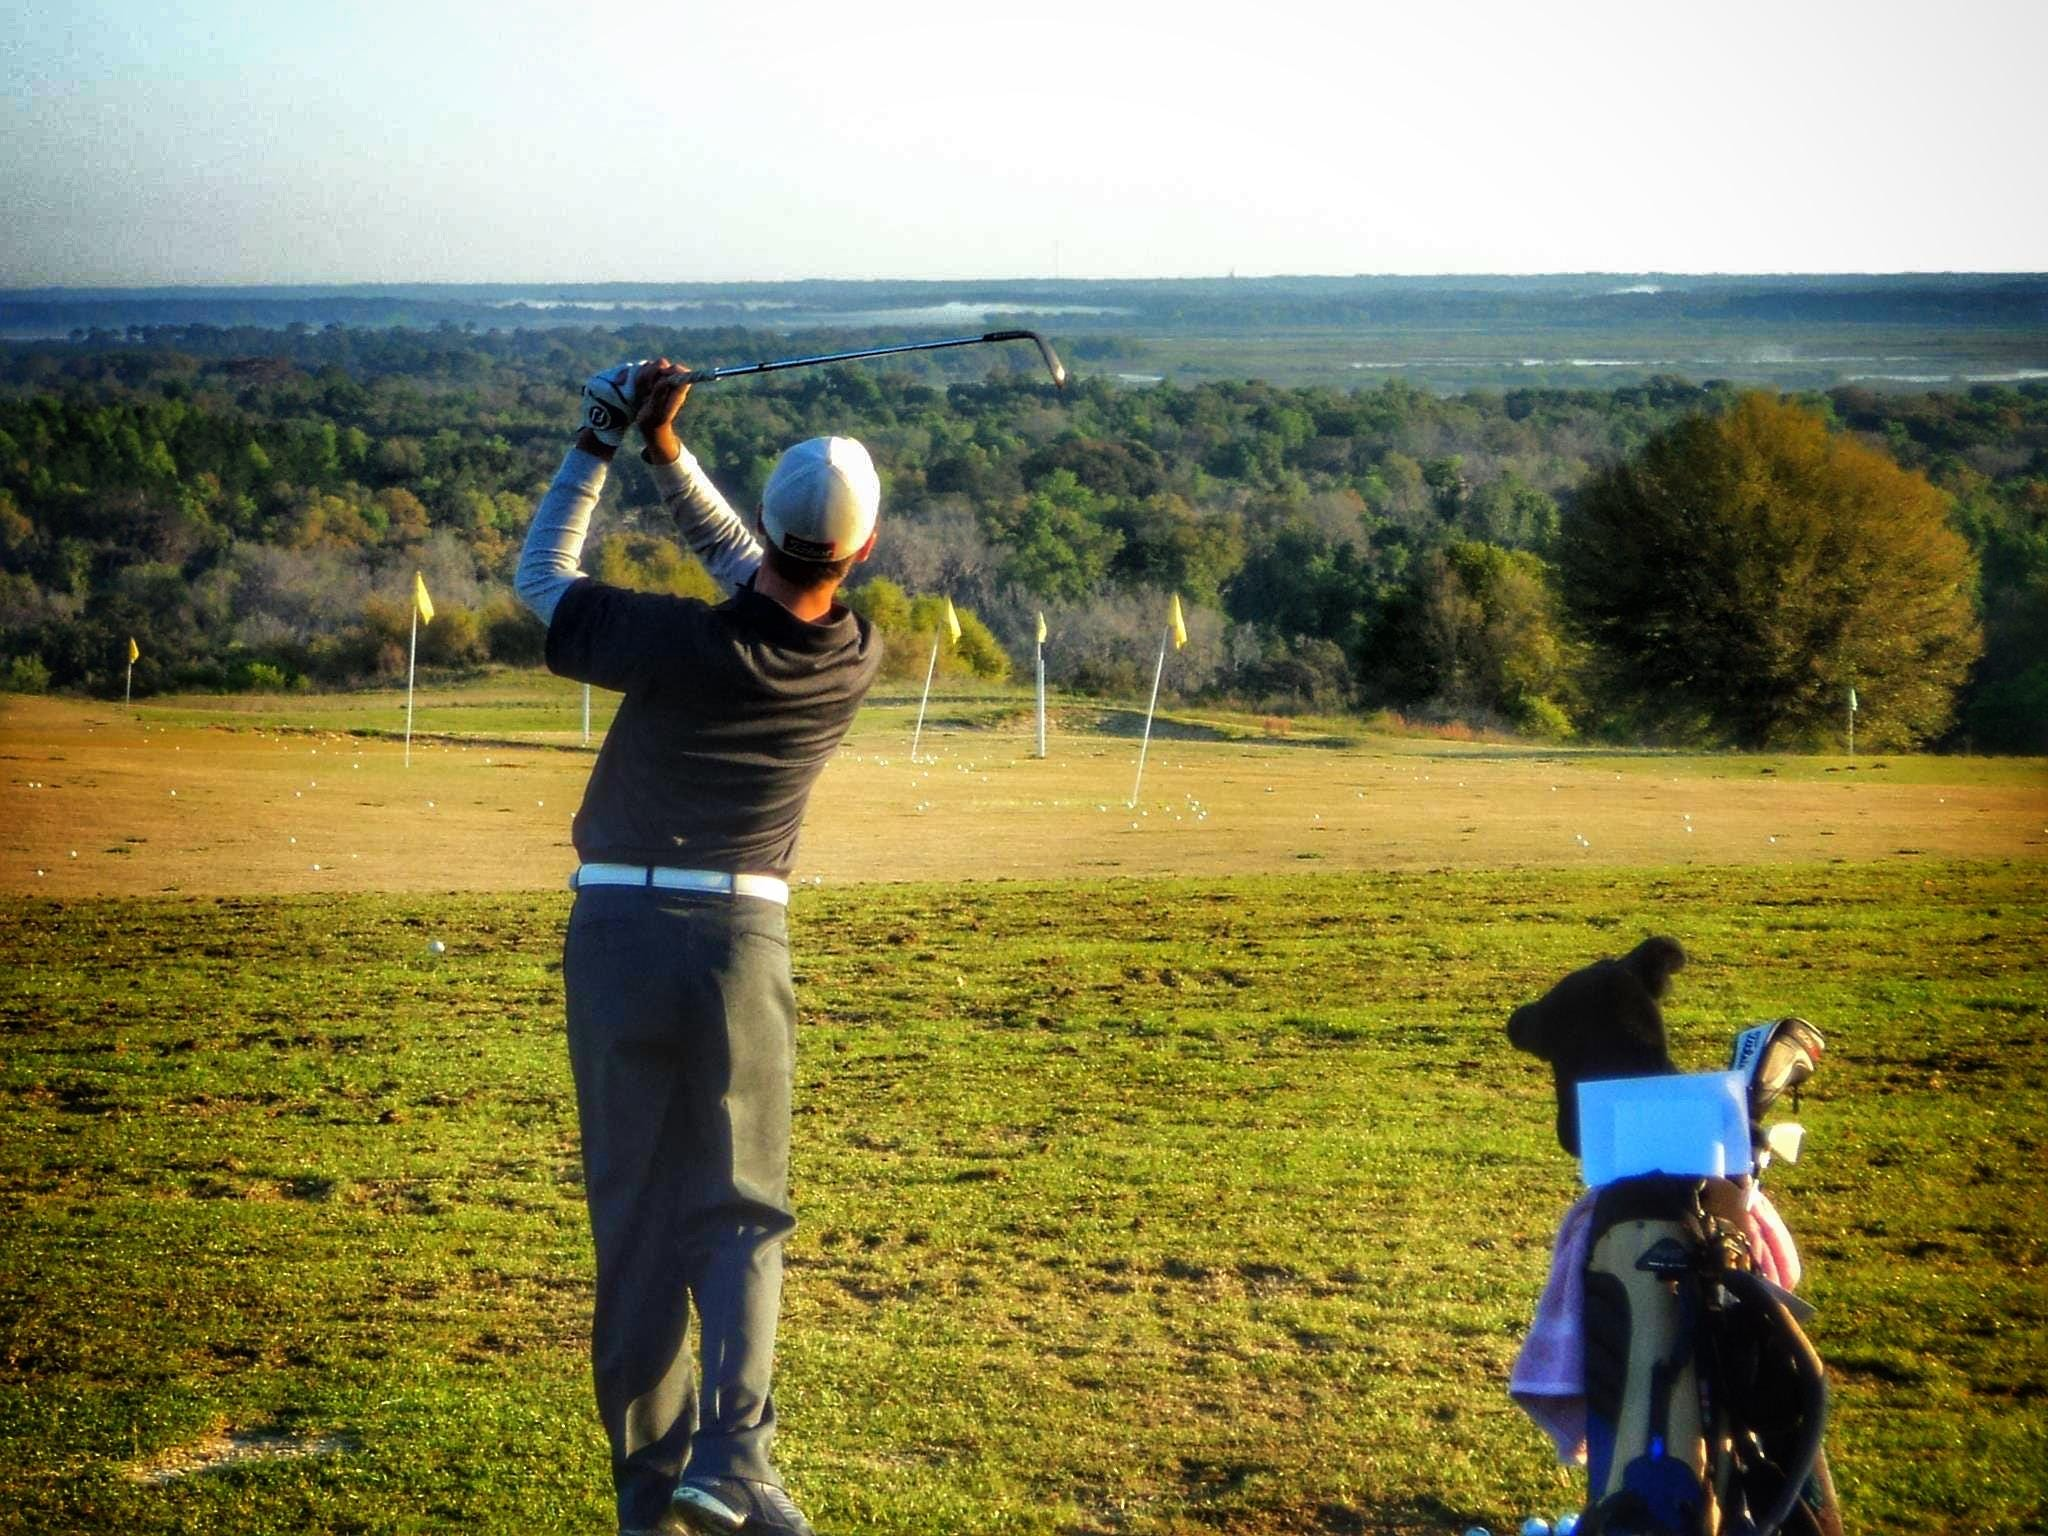 Former Florida High golfer Henry Westmoreland plays a round at Sugar Loaf. Westmoreland, now a sophomore at the University of West Florida, was the 2012 All-Big Bend Golfer of the Year and a three-time first team pick.